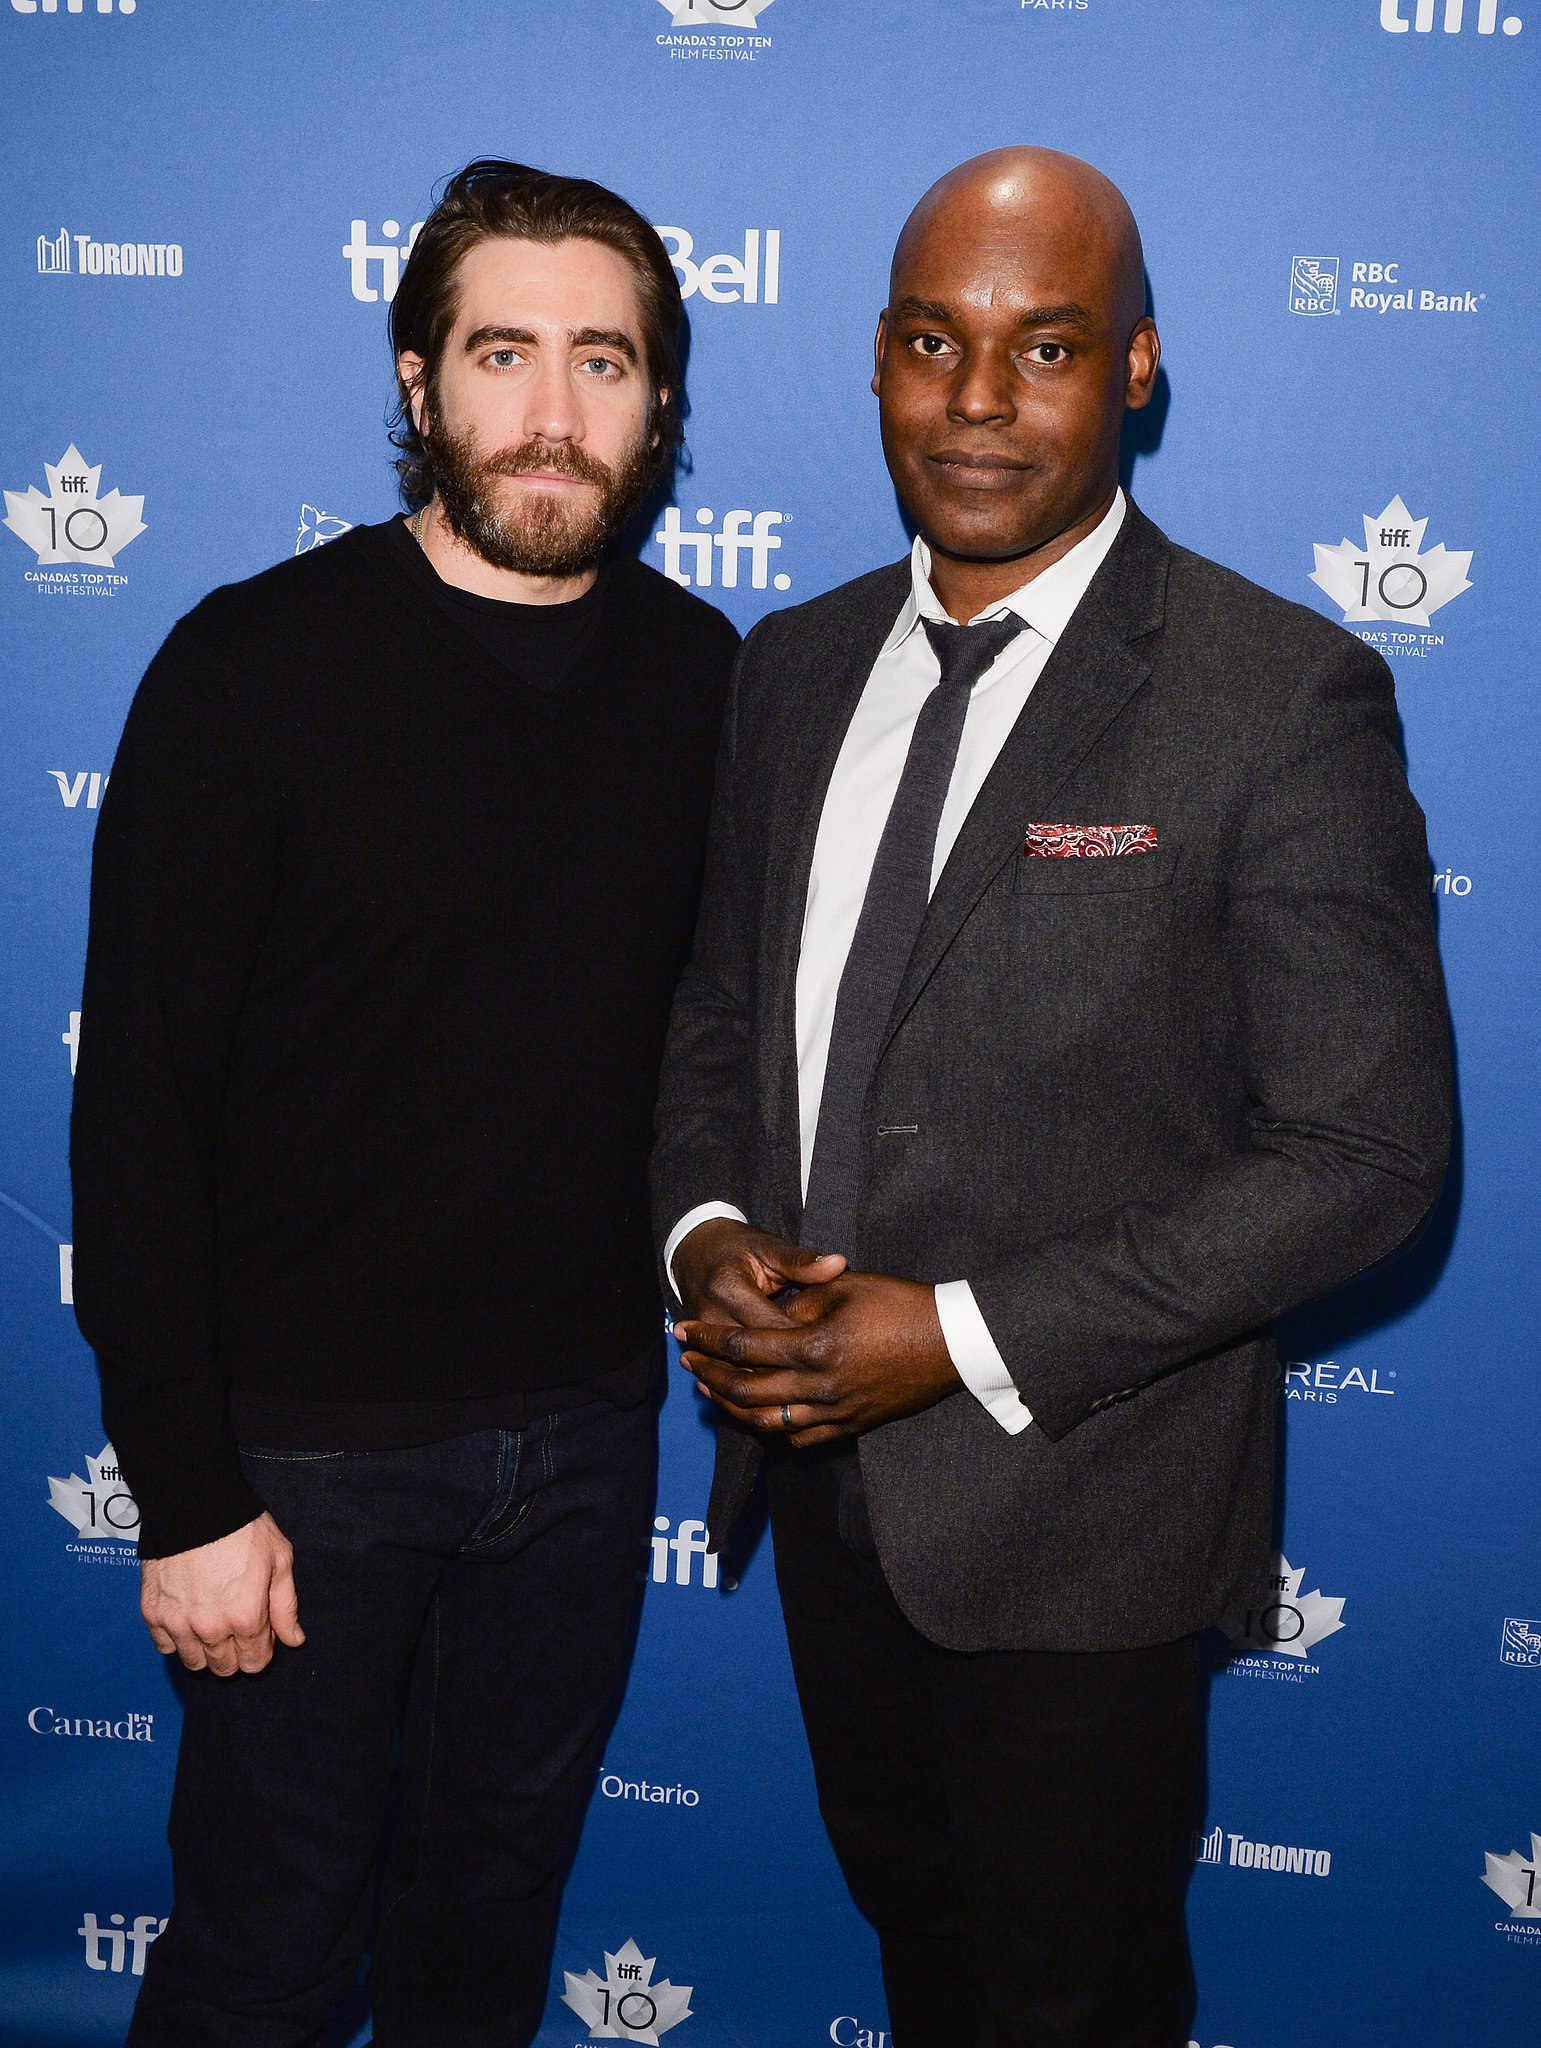 Jake posed for a snap with Cameron Bailey, the artistic director of the Toronto International Film Festival.